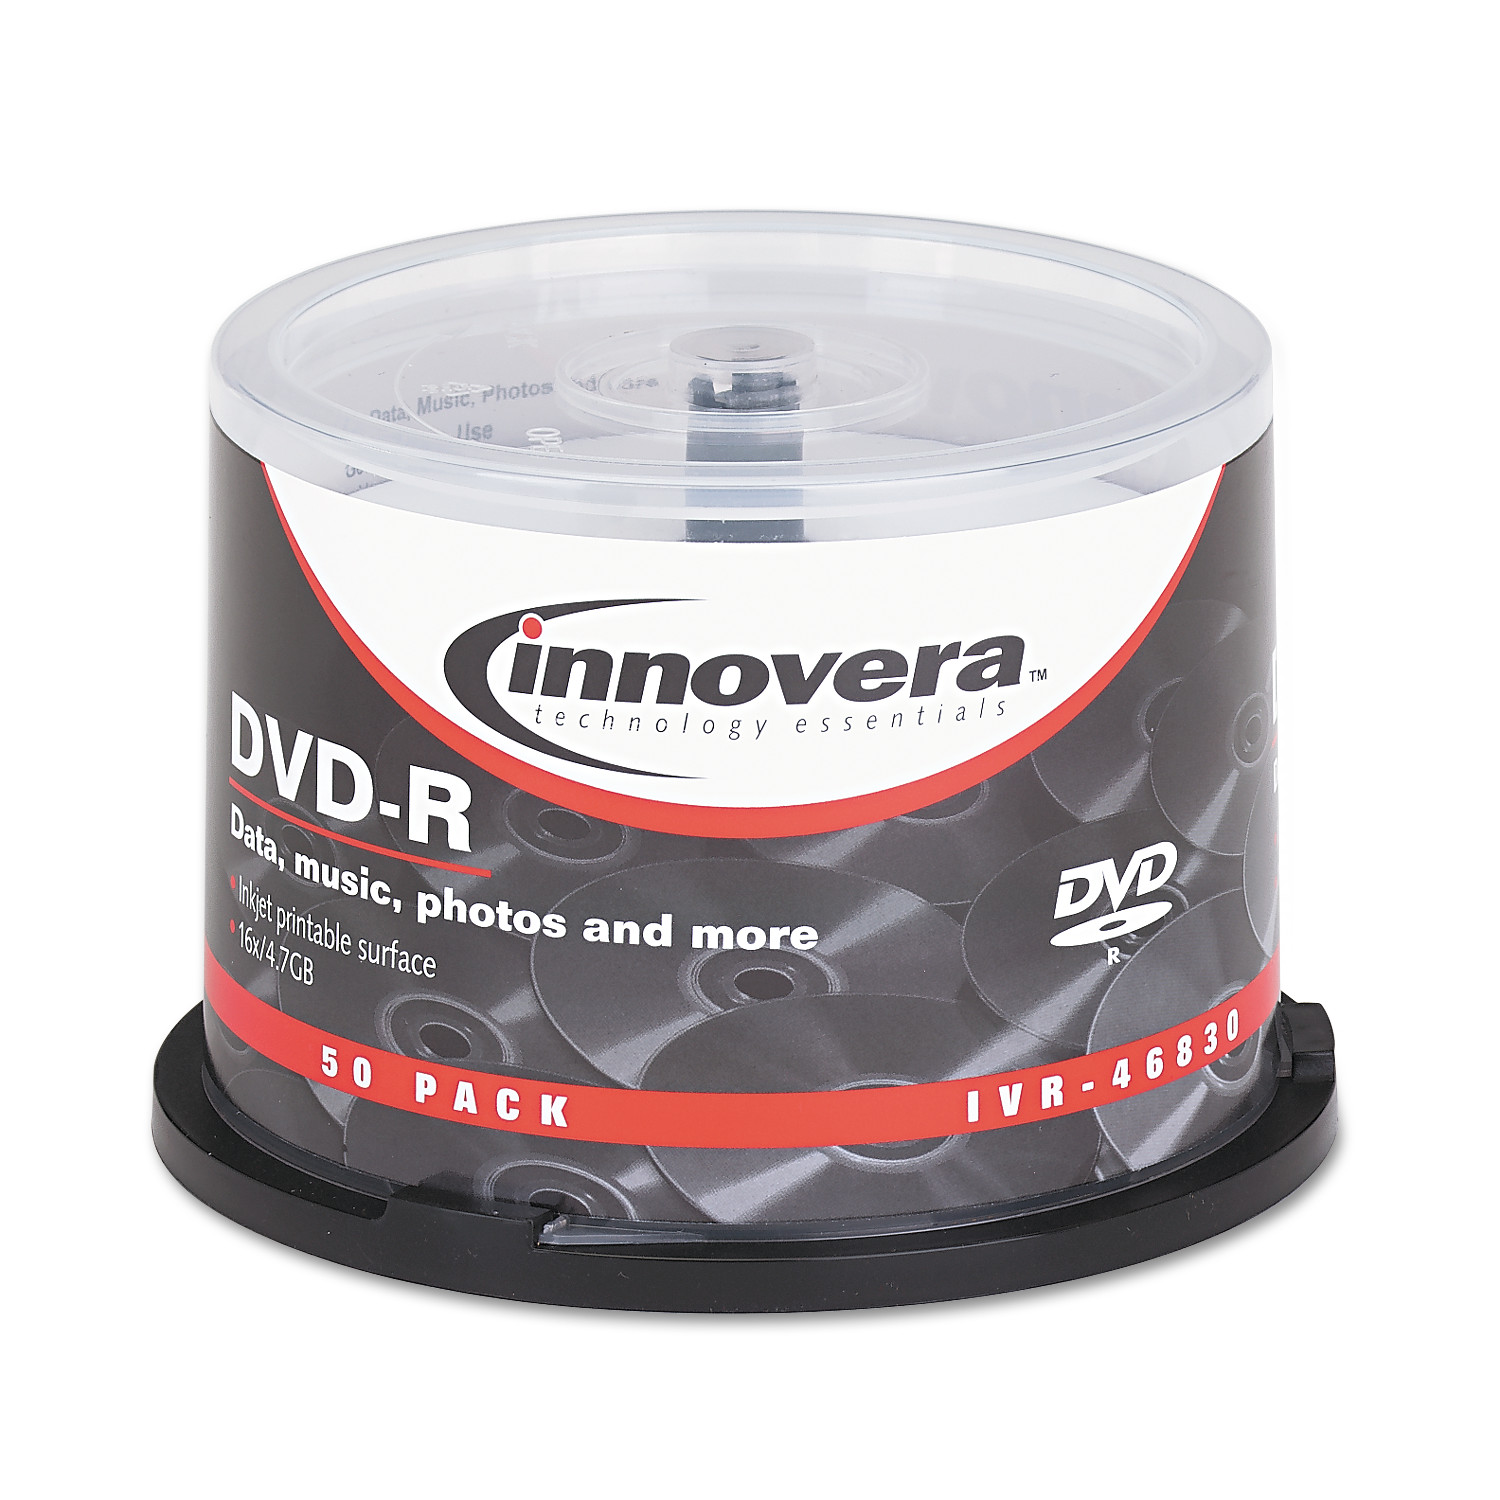 Innovera DVD-R Discs, Hub Printable, 4.7GB, 16x, Spindle, Matte White, 50/Pack -IVR46830